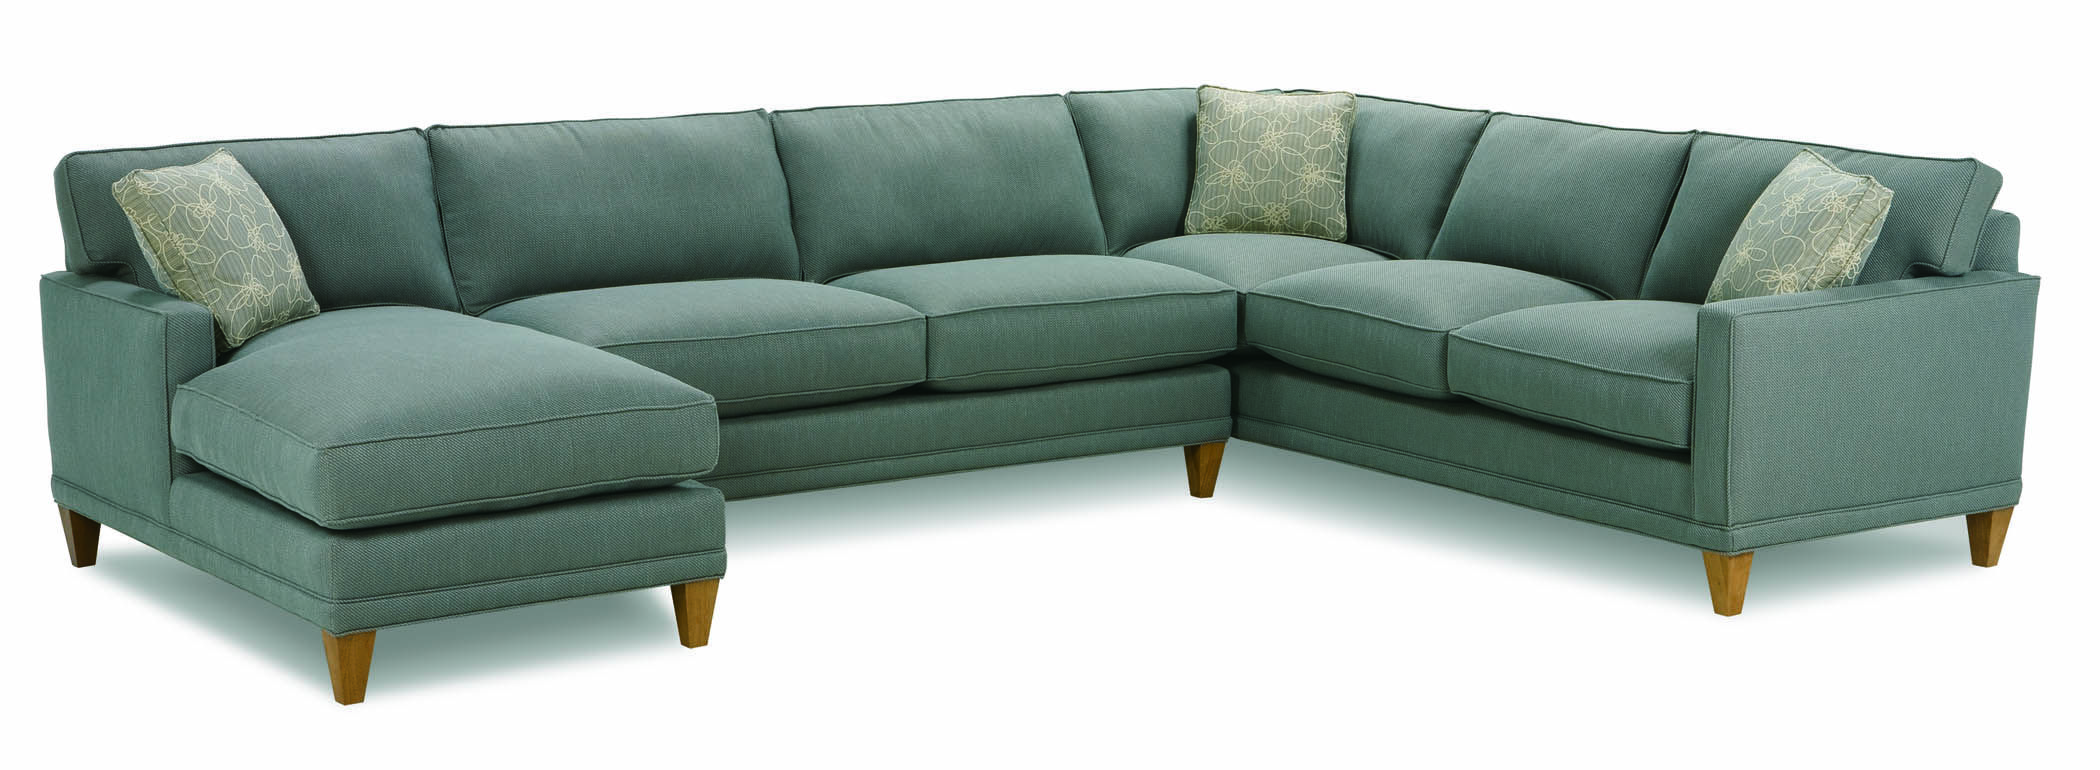 K621c Townsend Sectional From Rowe Furniture Www Rowefurniture Many Diffe Fabric Options Great Feet